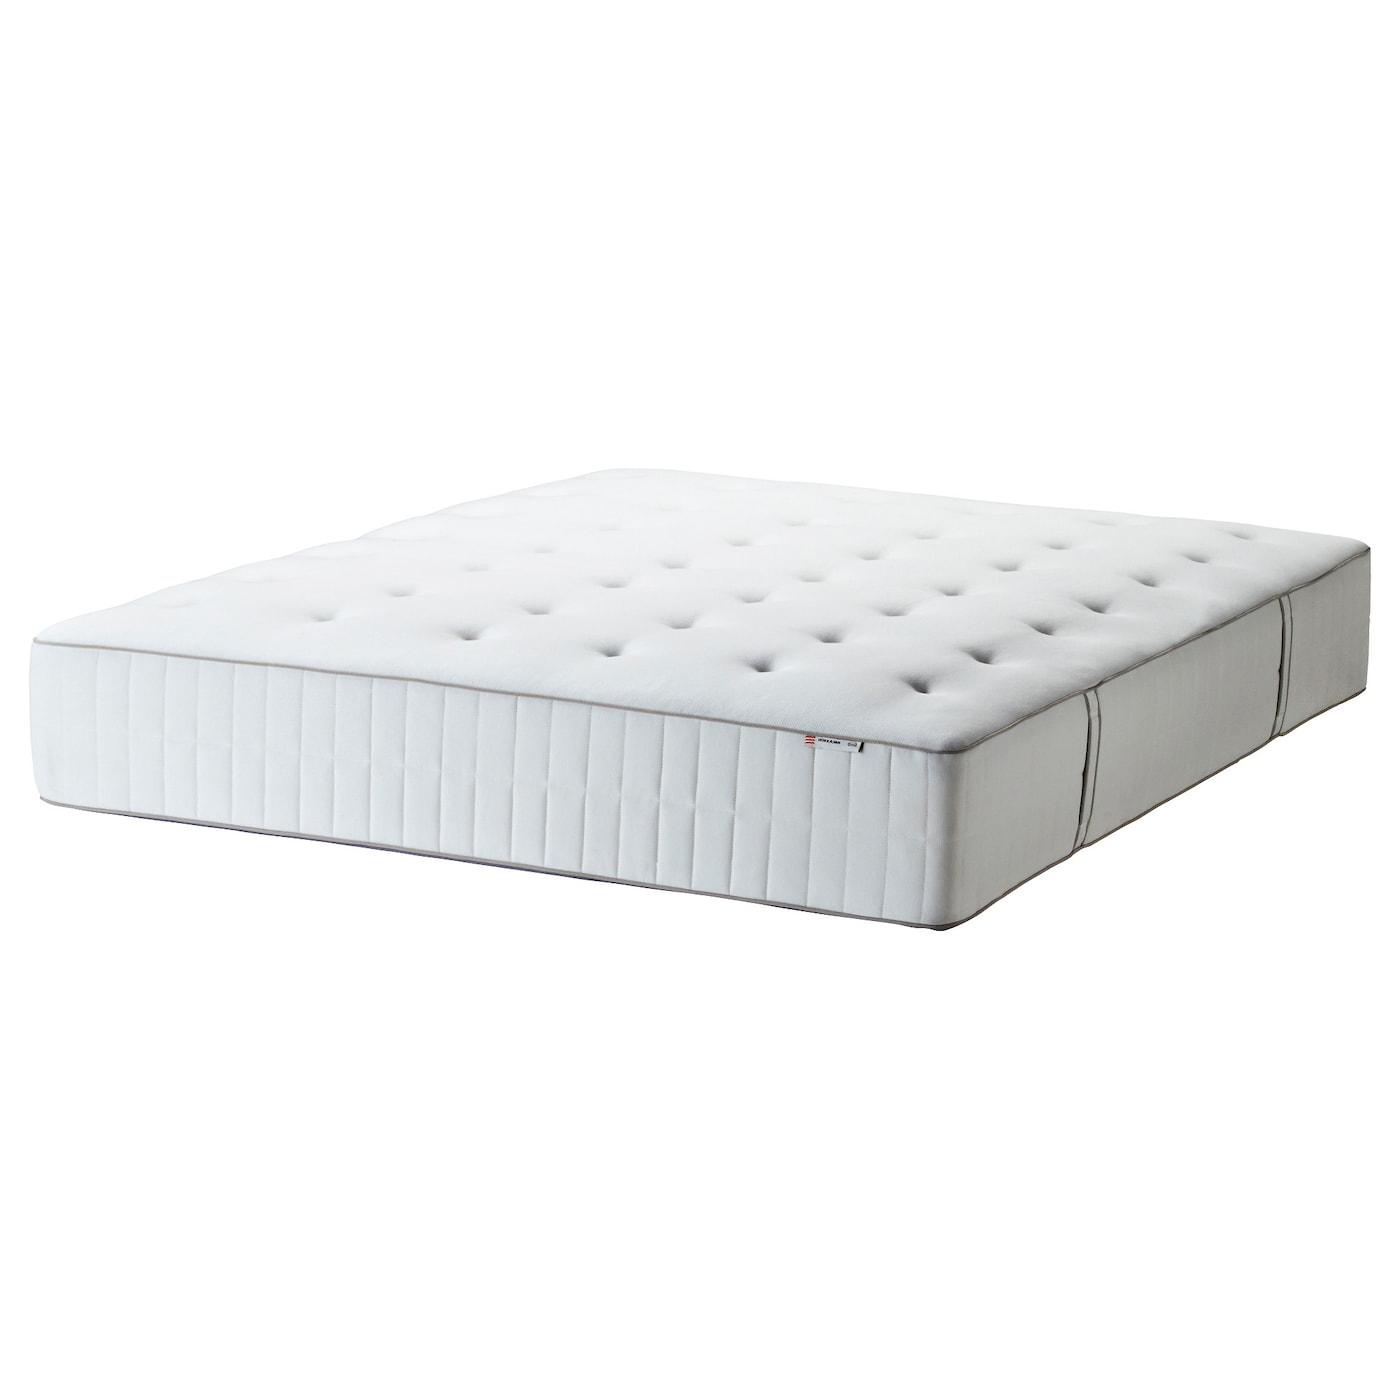 hokk sen matelas ressorts ensach s mi ferme blanc. Black Bedroom Furniture Sets. Home Design Ideas